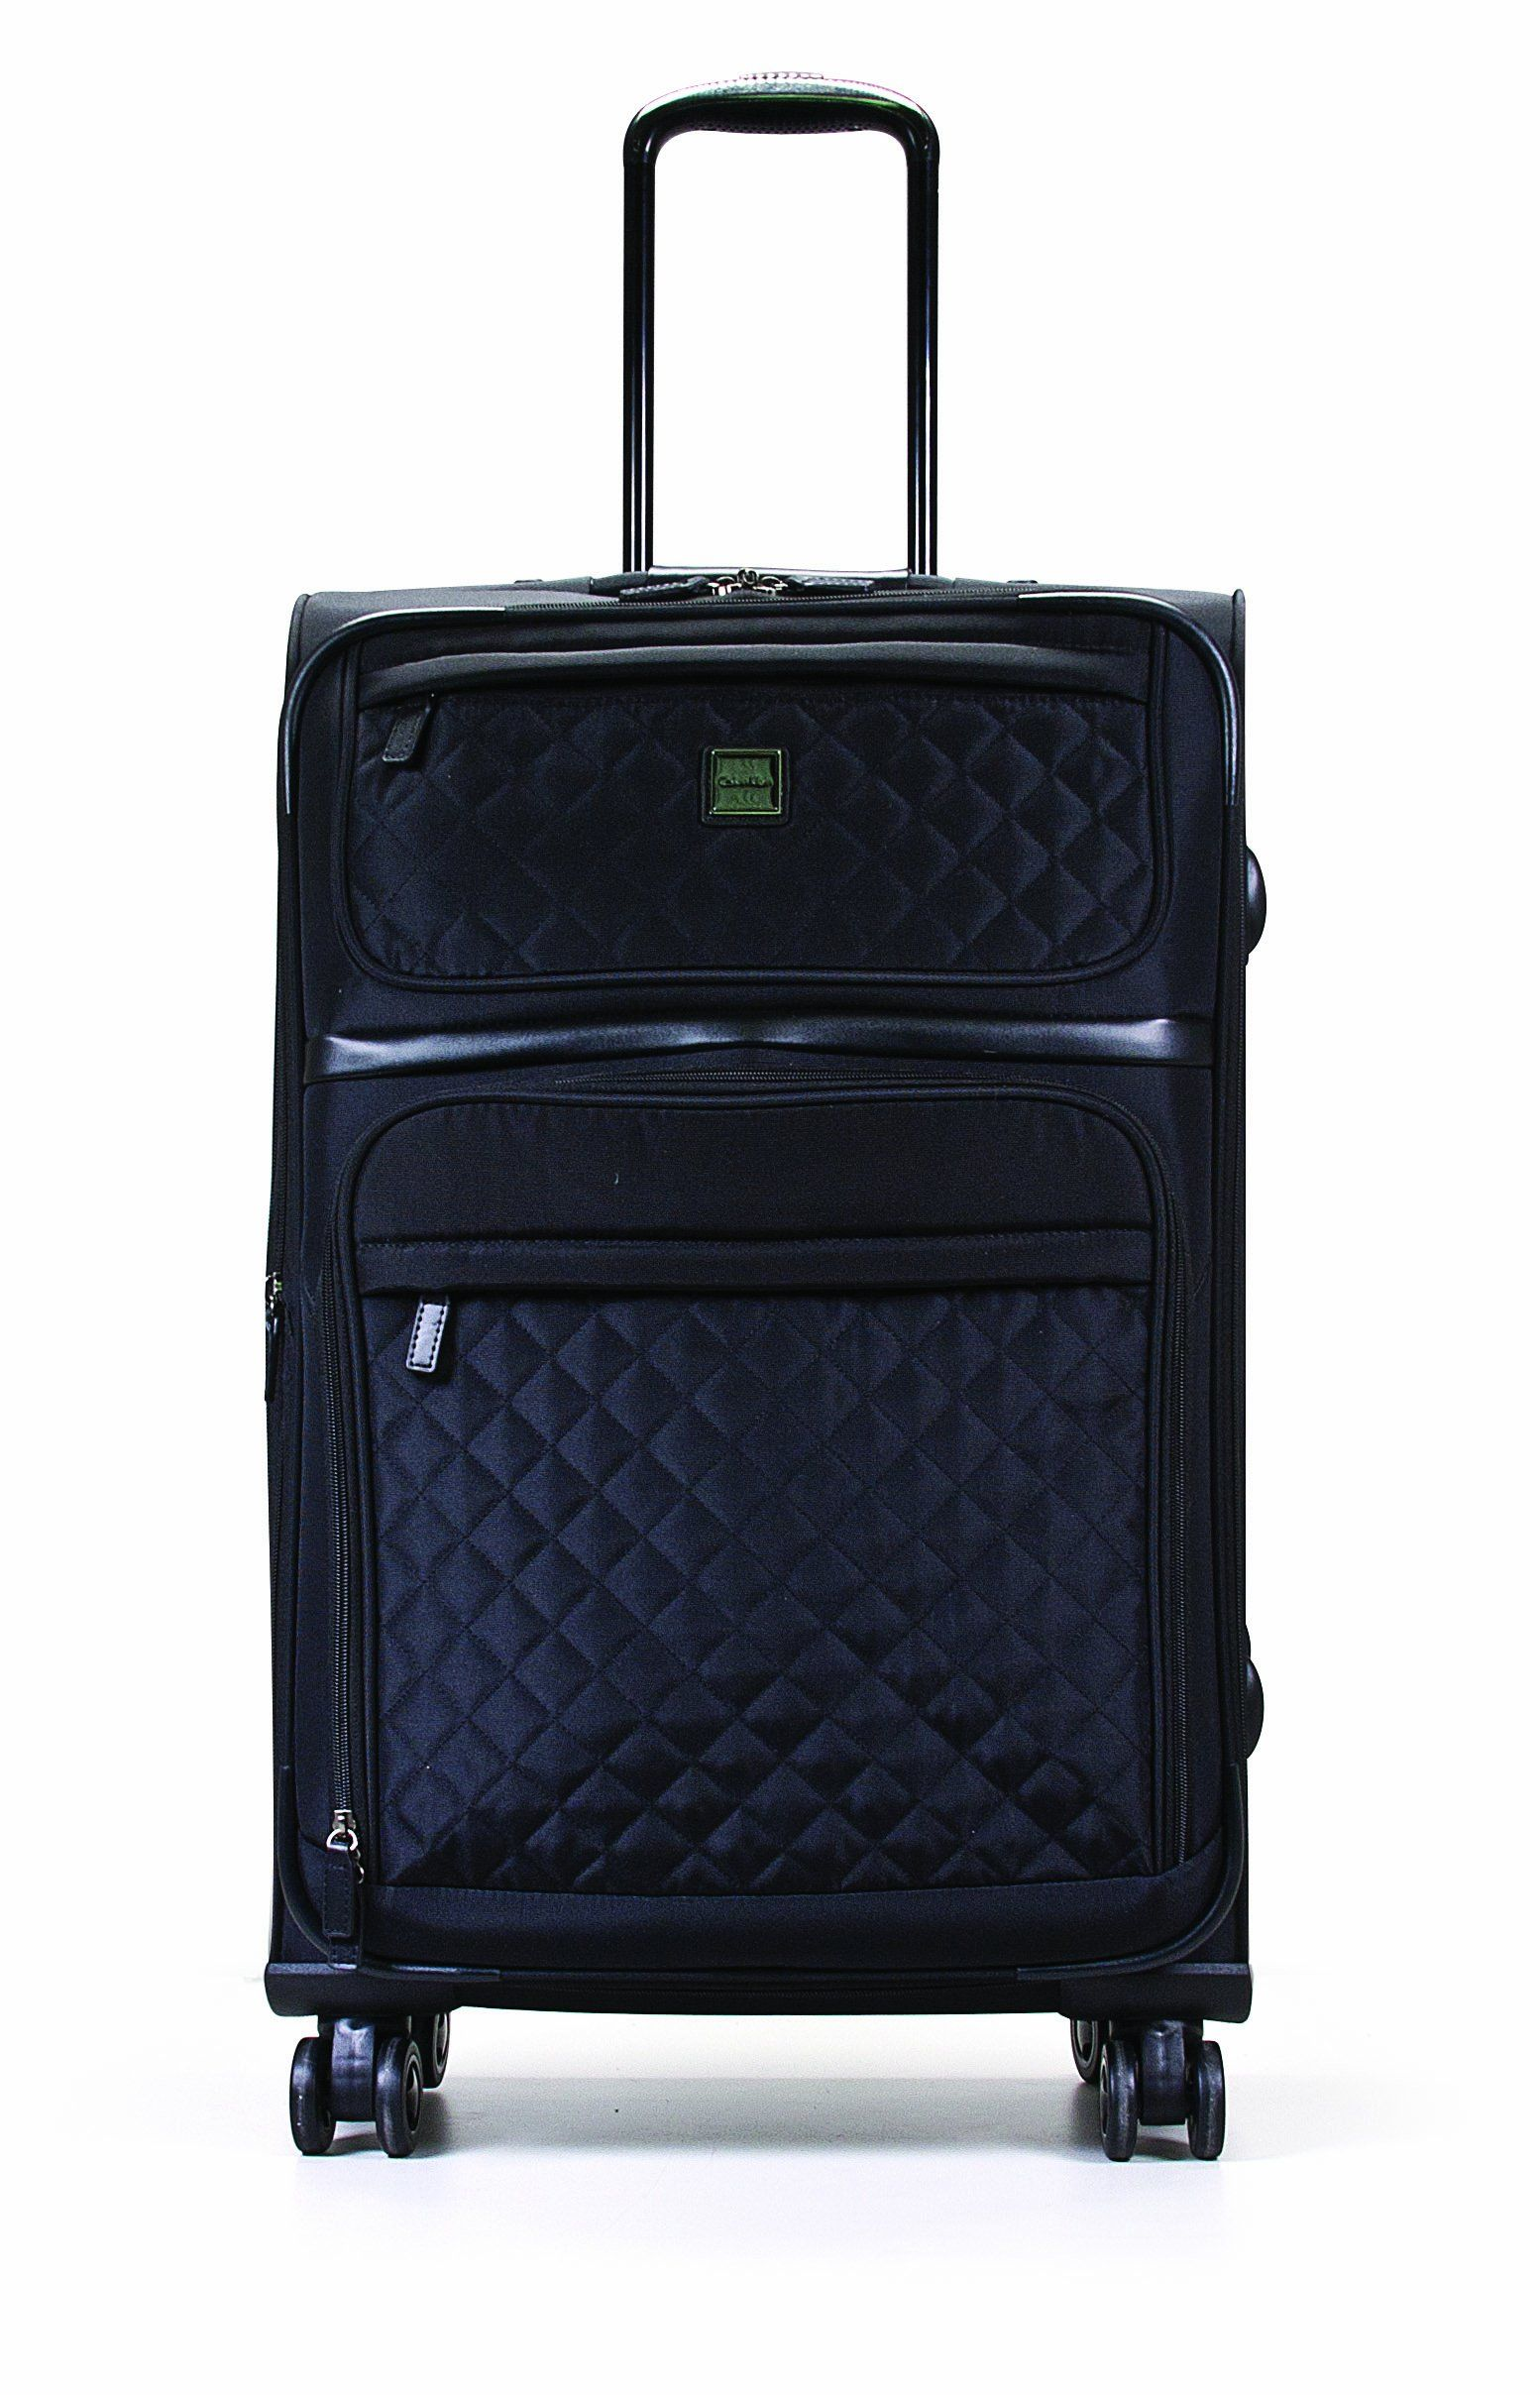 9bac4b9b4706 Calvin Klein Luggage Hawthorne Quilted 24-Inch Upright Spinner ...